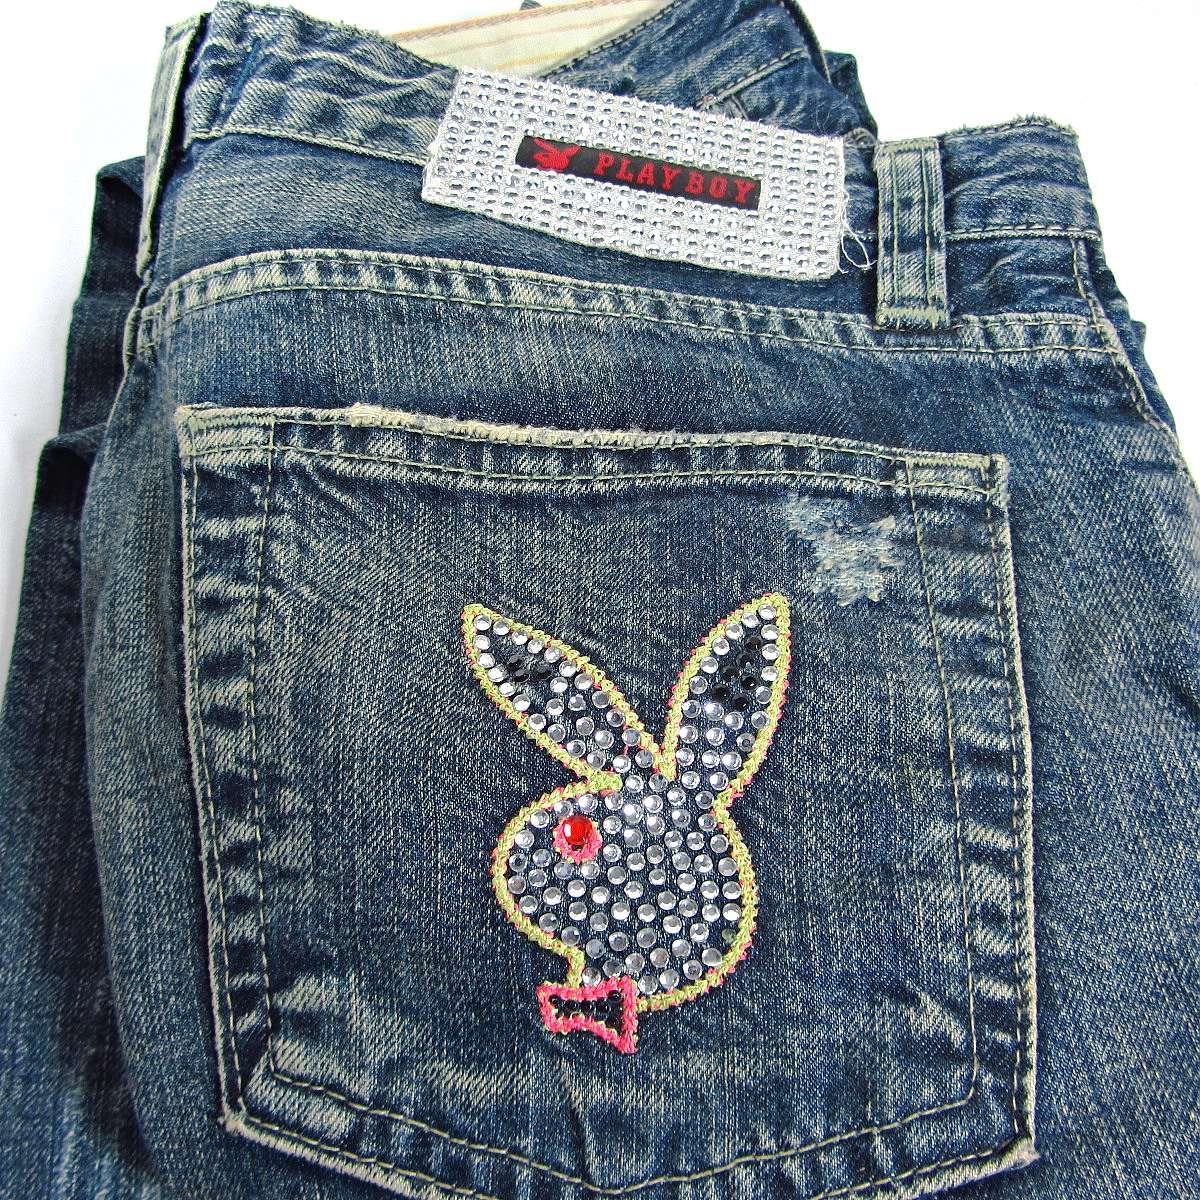 Playboy Blue Jean Deri-Kumaş-Tekstil Blue Jean